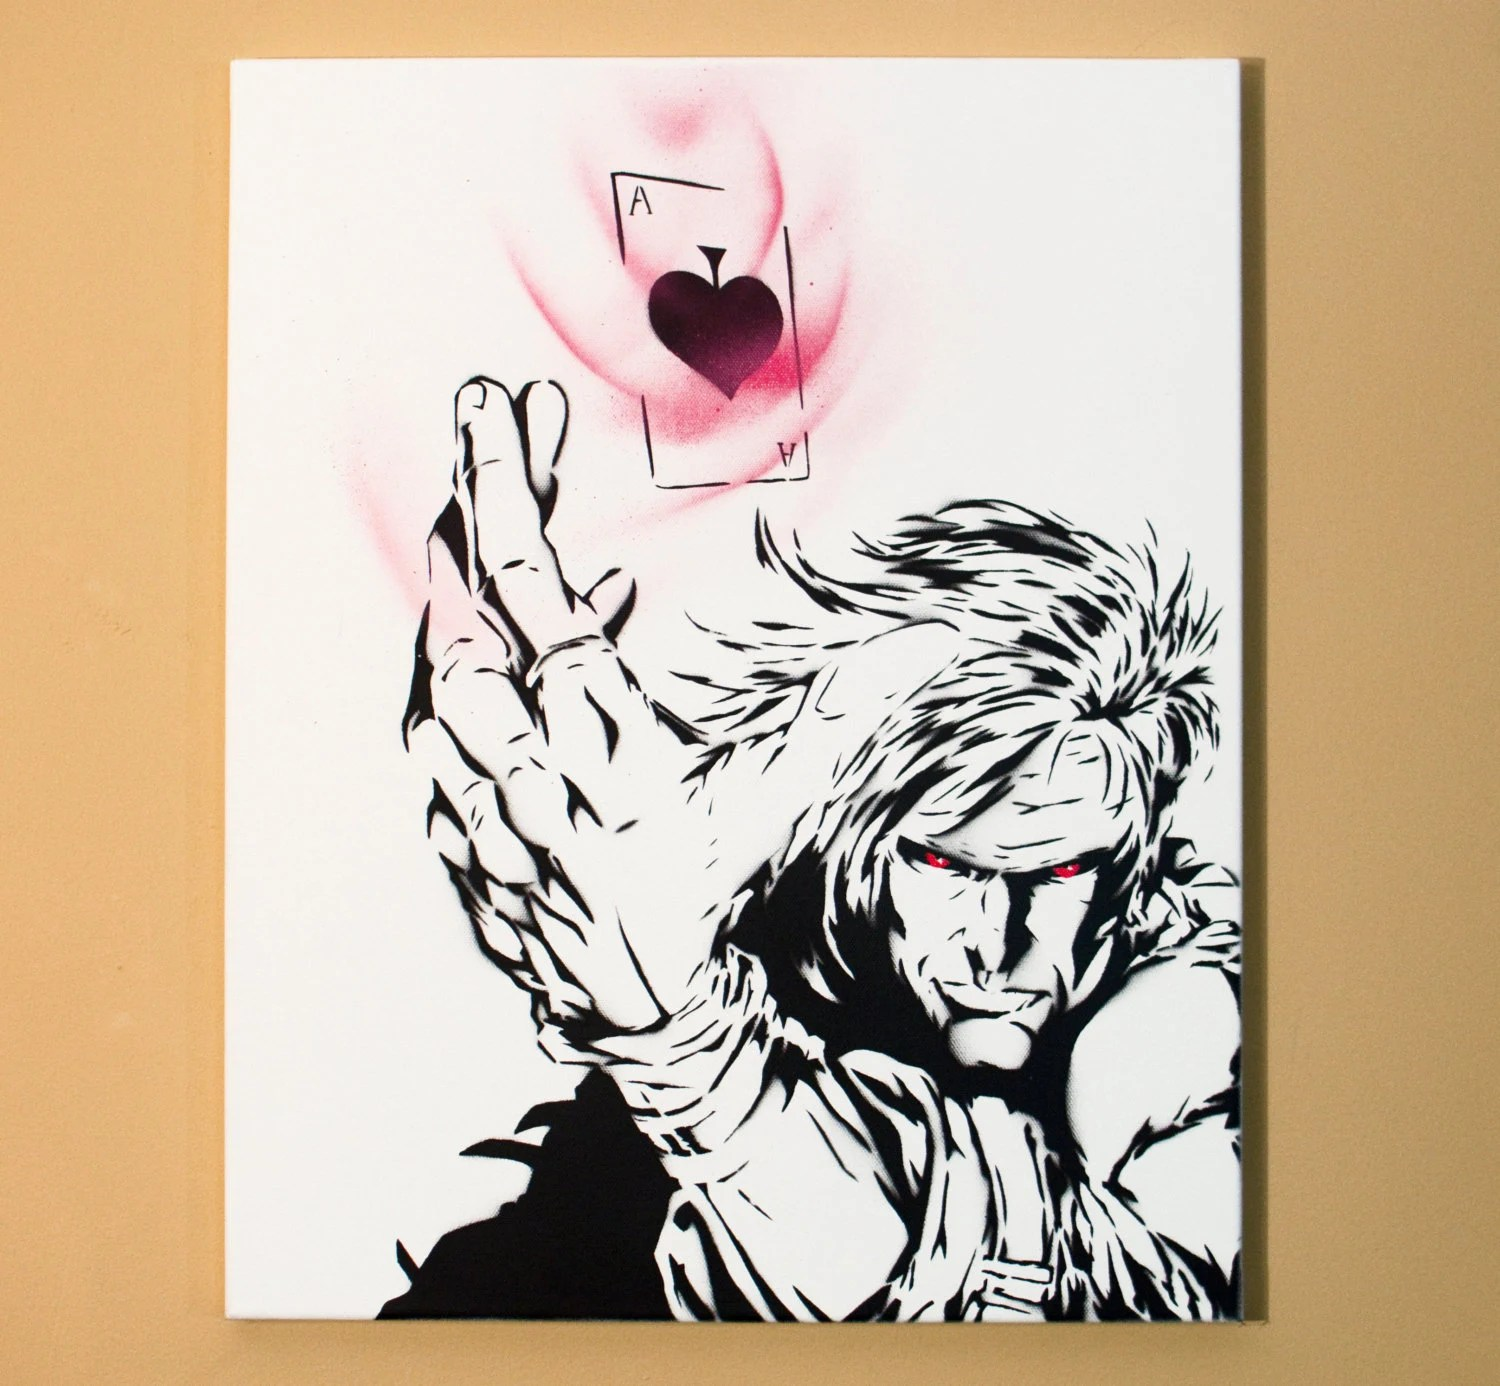 Gambit Art Spray Paint from Handmade Stencil Black and Etsy